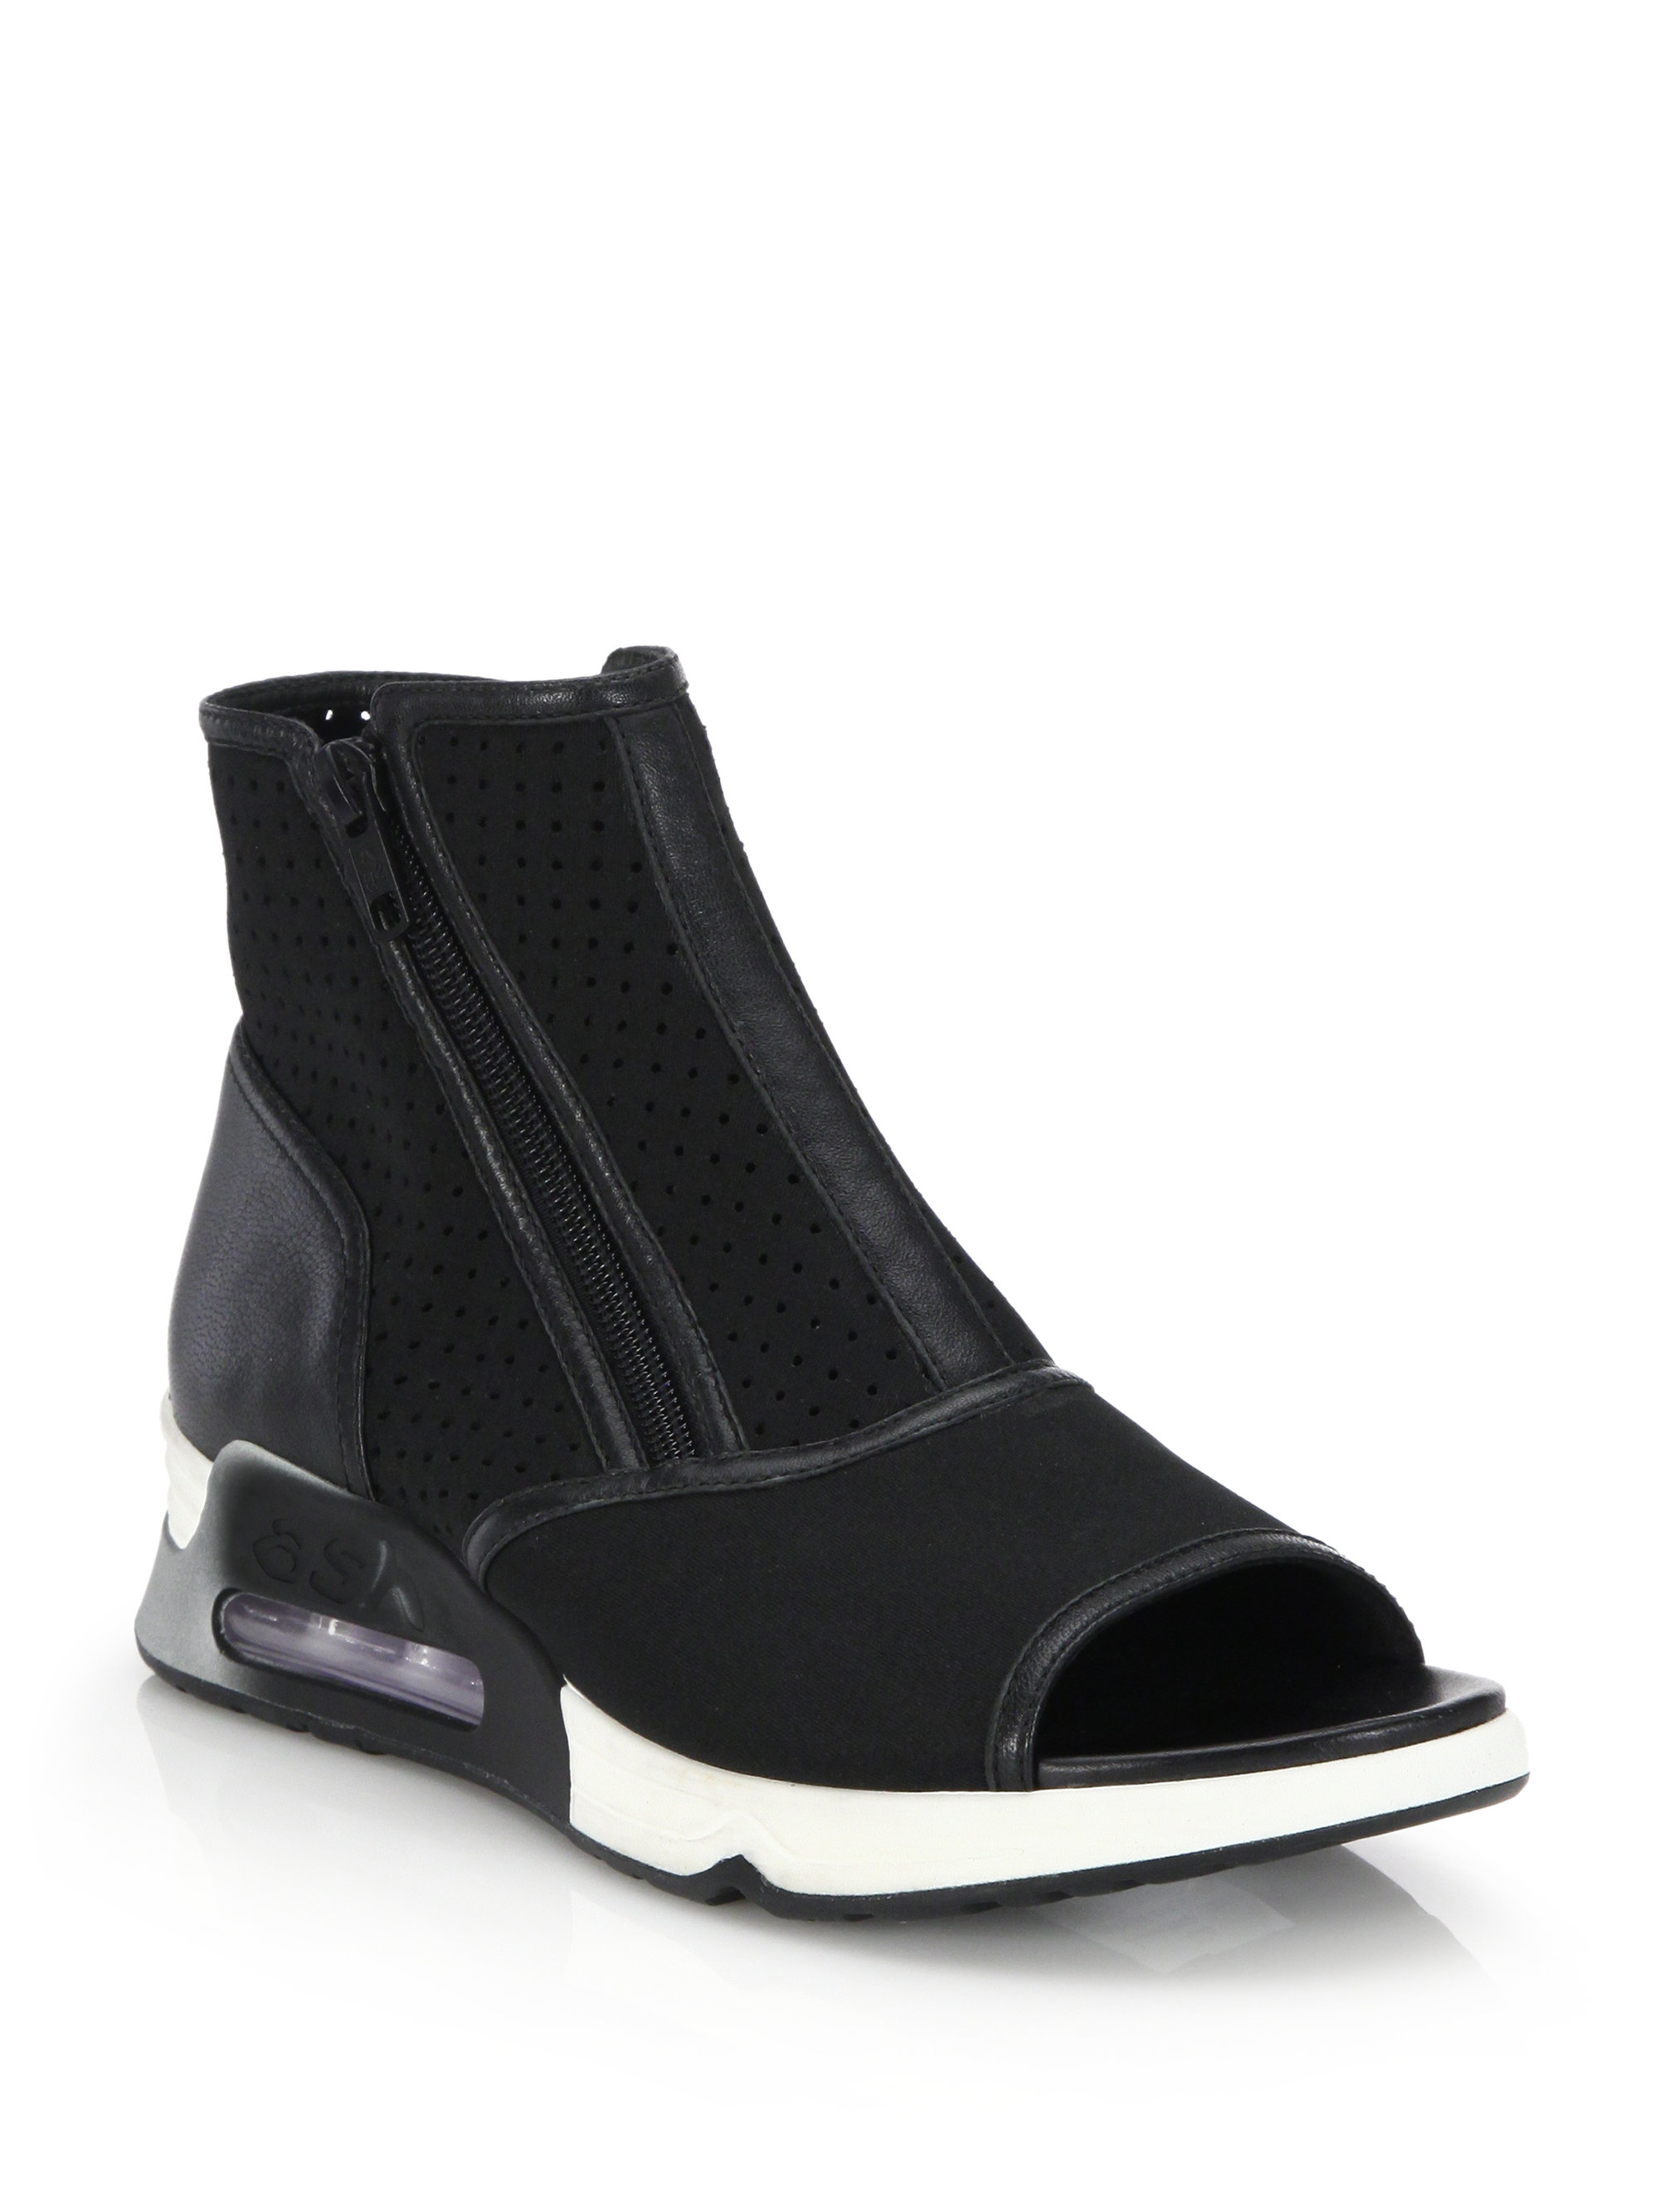 Shop women's wedges for a look that is both classy and comfortable. Order the latest wedges from Forever 21 and receive free shipping on orders over $